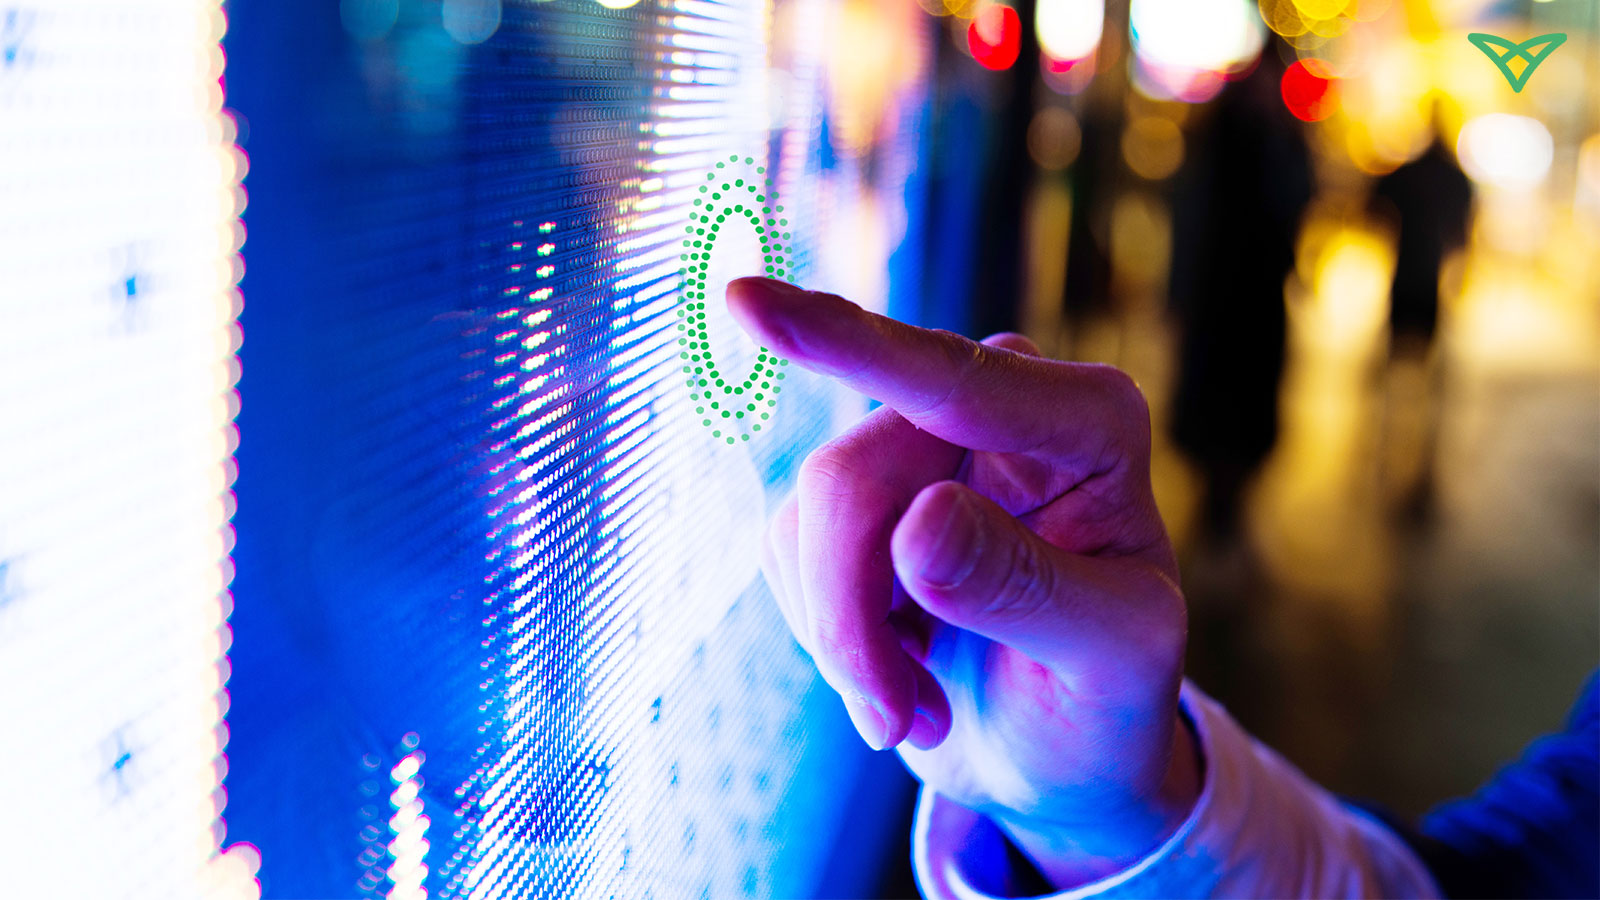 Consumer interacting with touchless technology with a public touchscreen